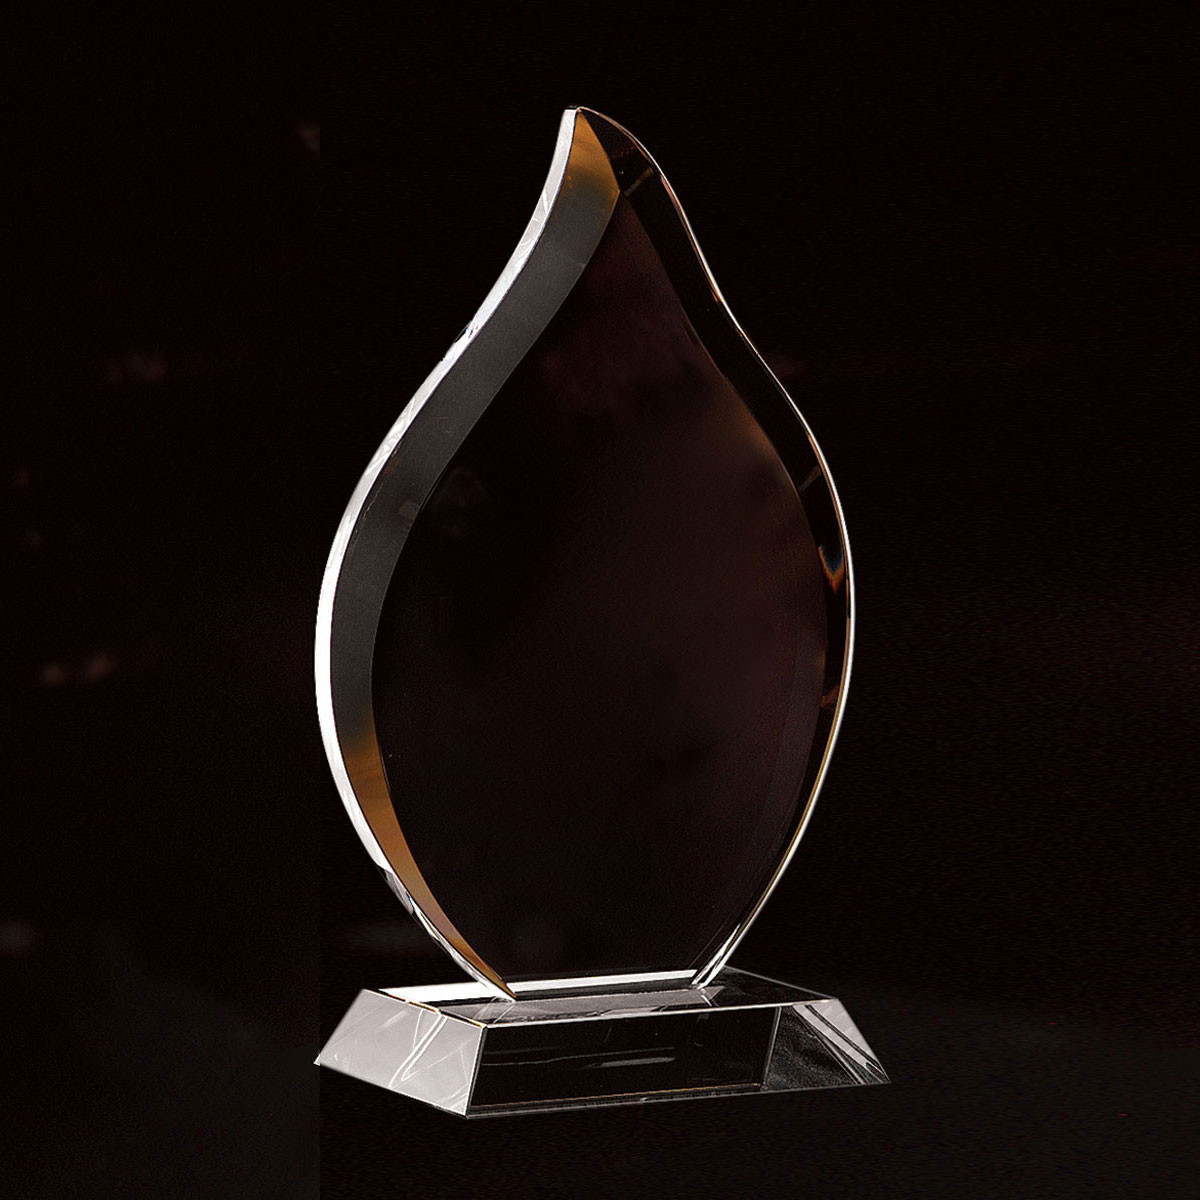 Crystal Blanc, Personalize! Flame Award, Small